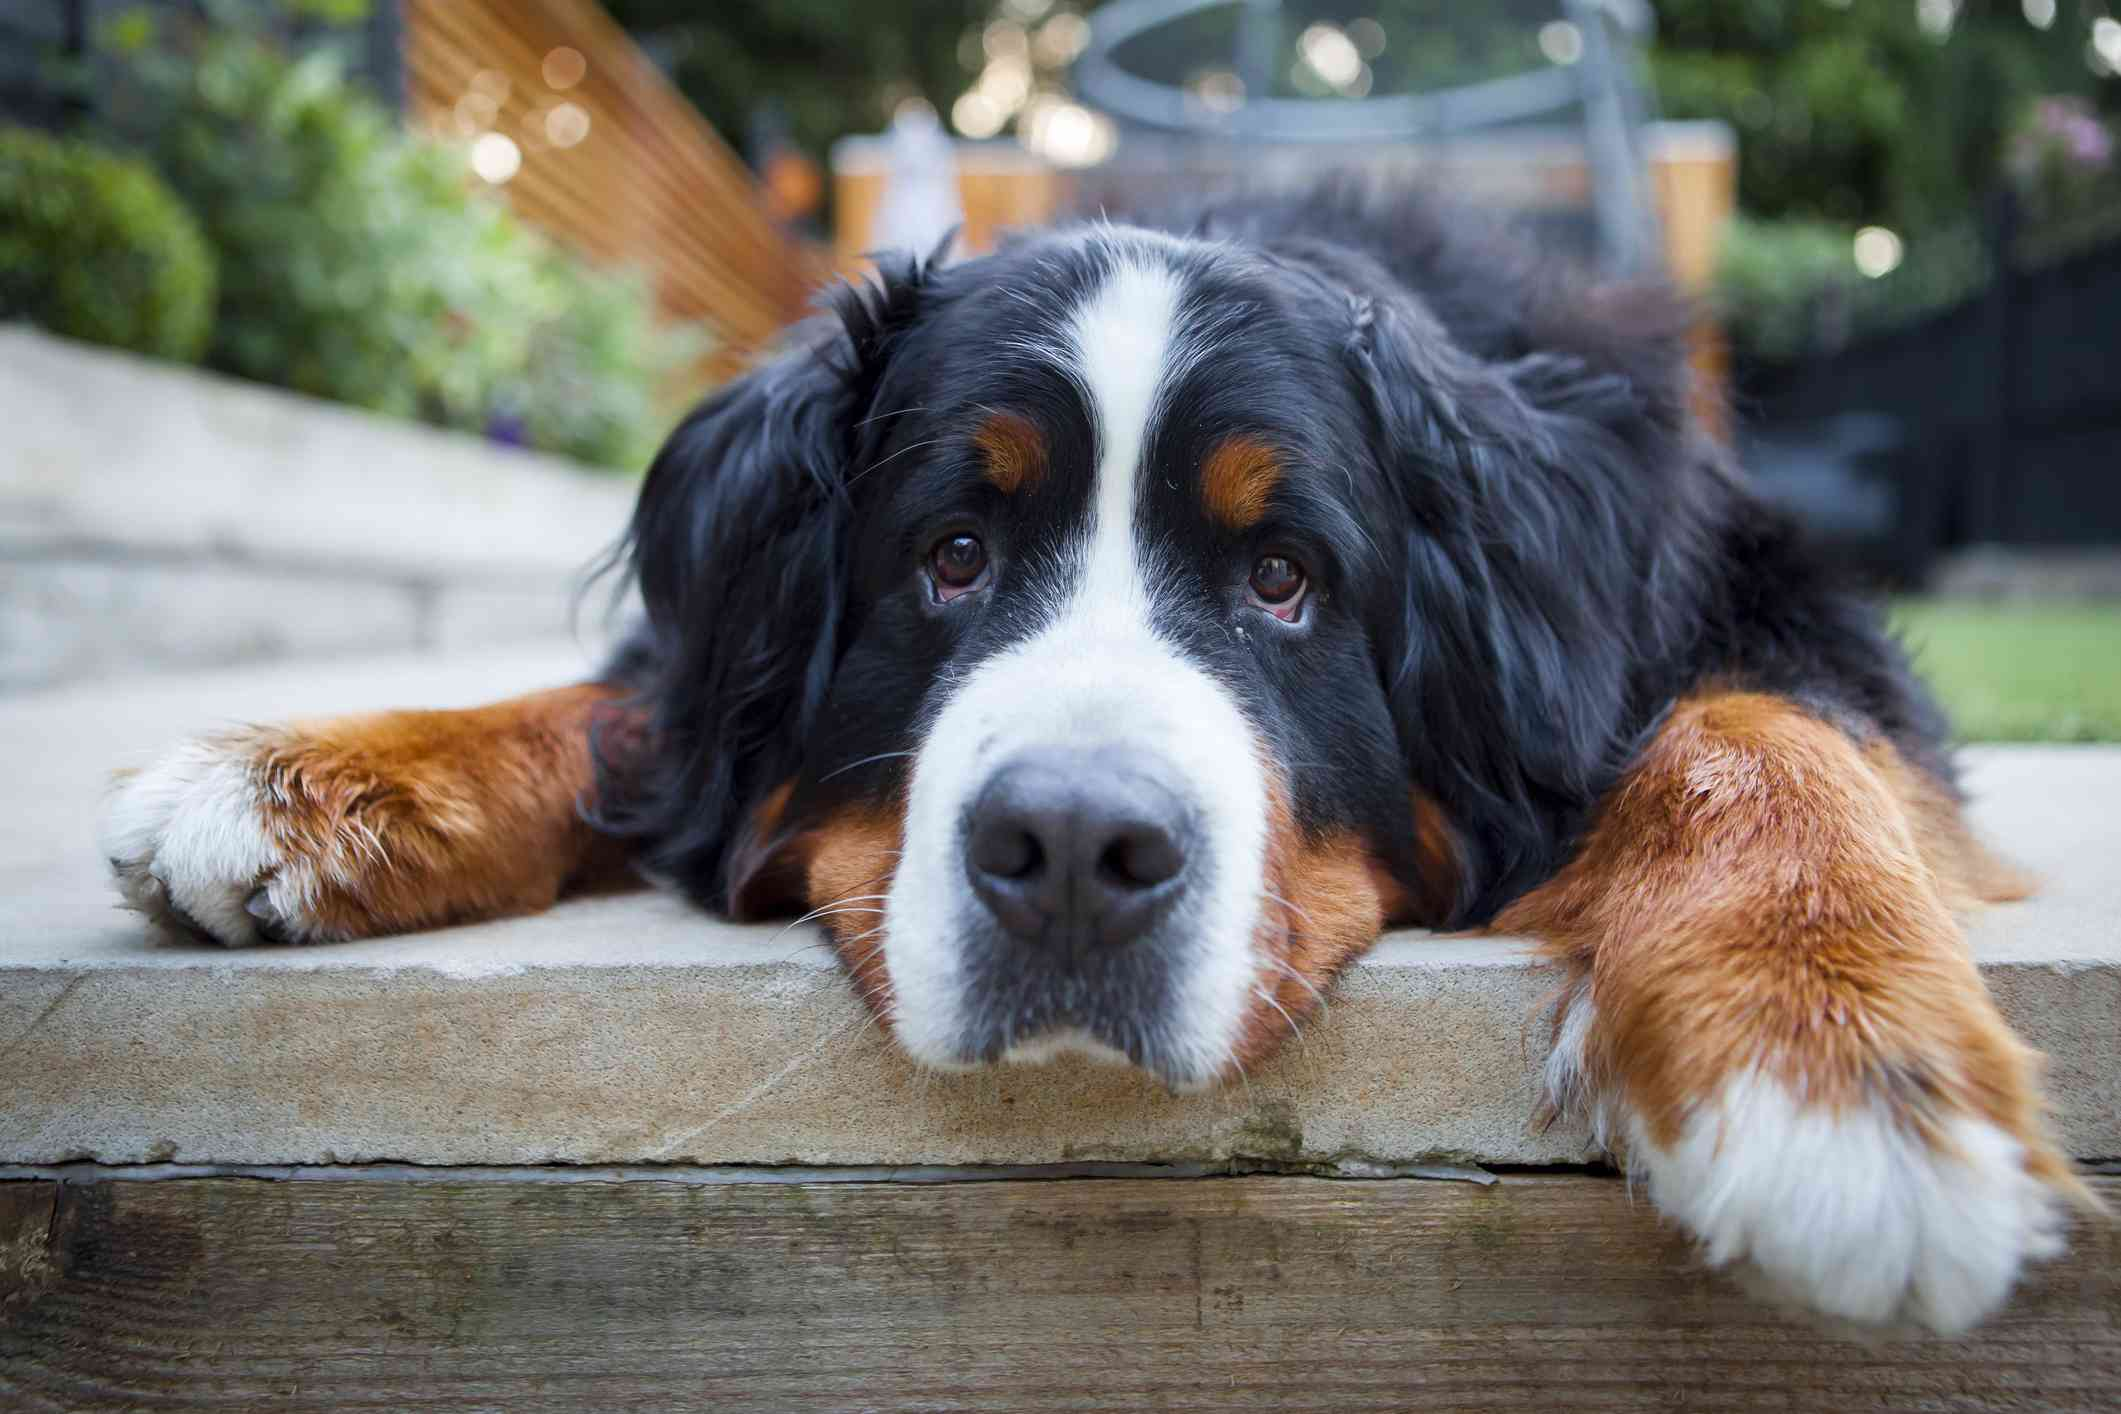 A Bernese Mountain dog laying on a patio